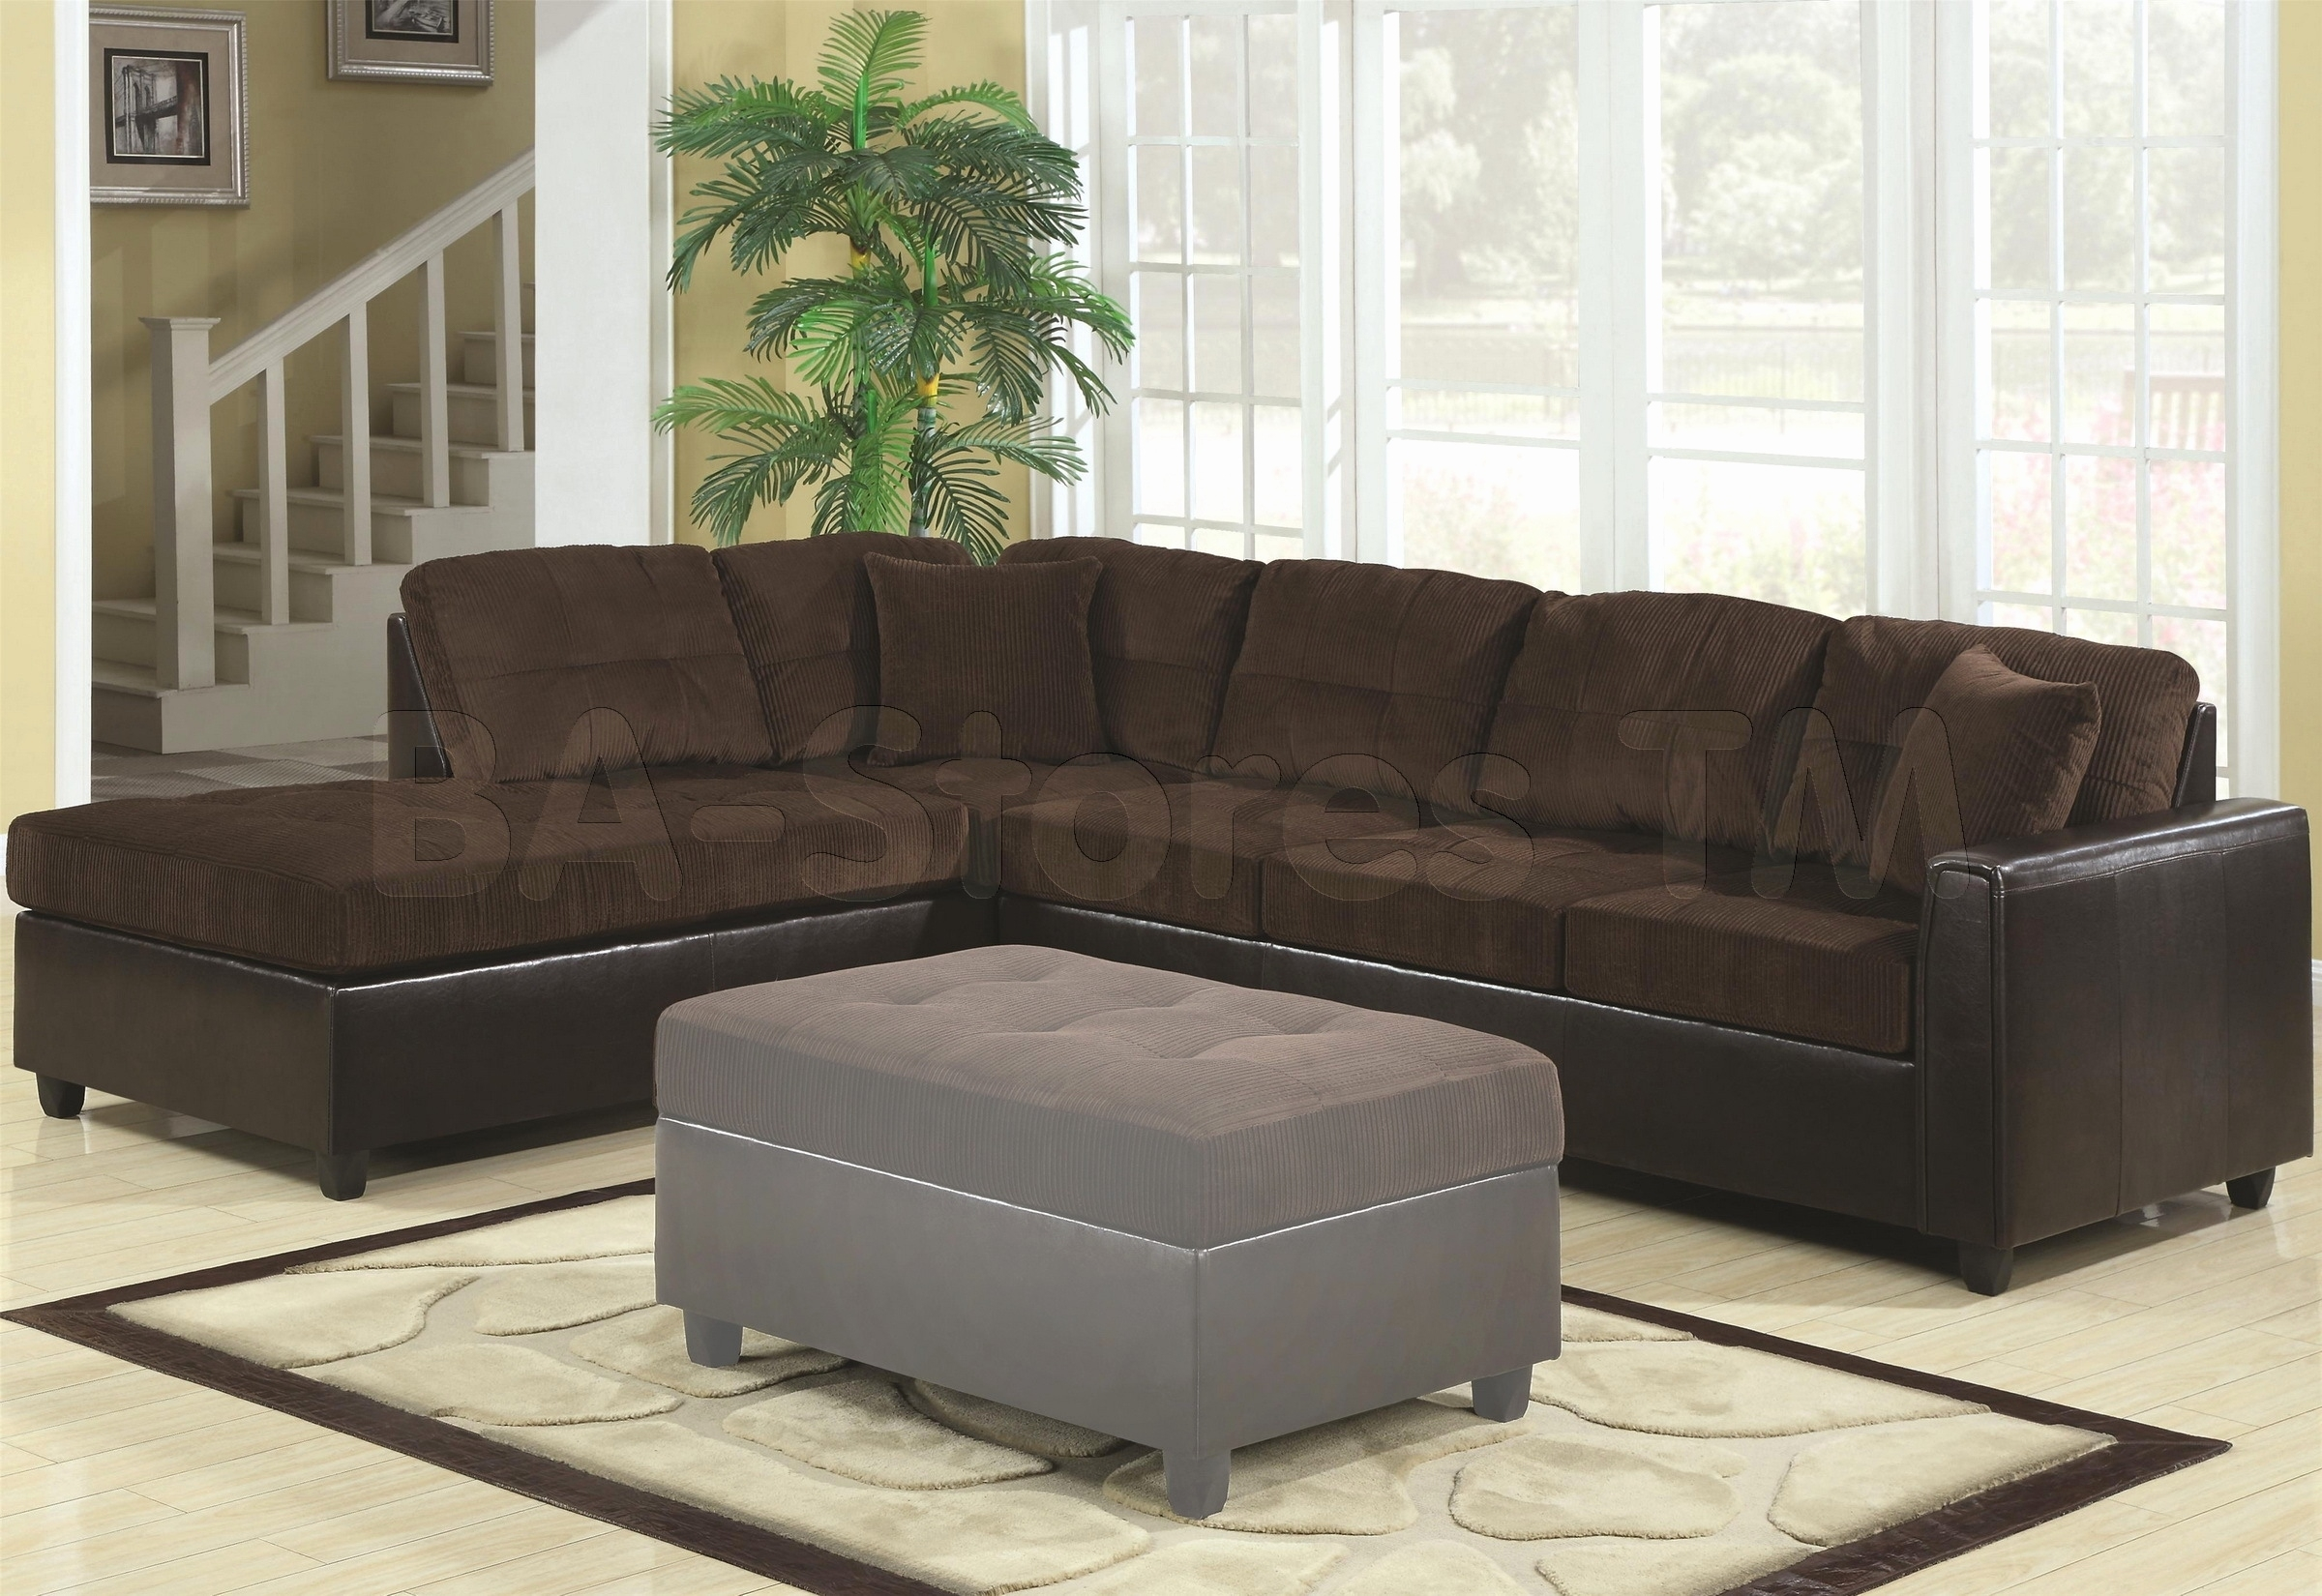 Fresh Sectional Sofa Beds For Small Spaces 2018 – Couches And Sofas With Sectional Sofas At Ebay (View 2 of 10)